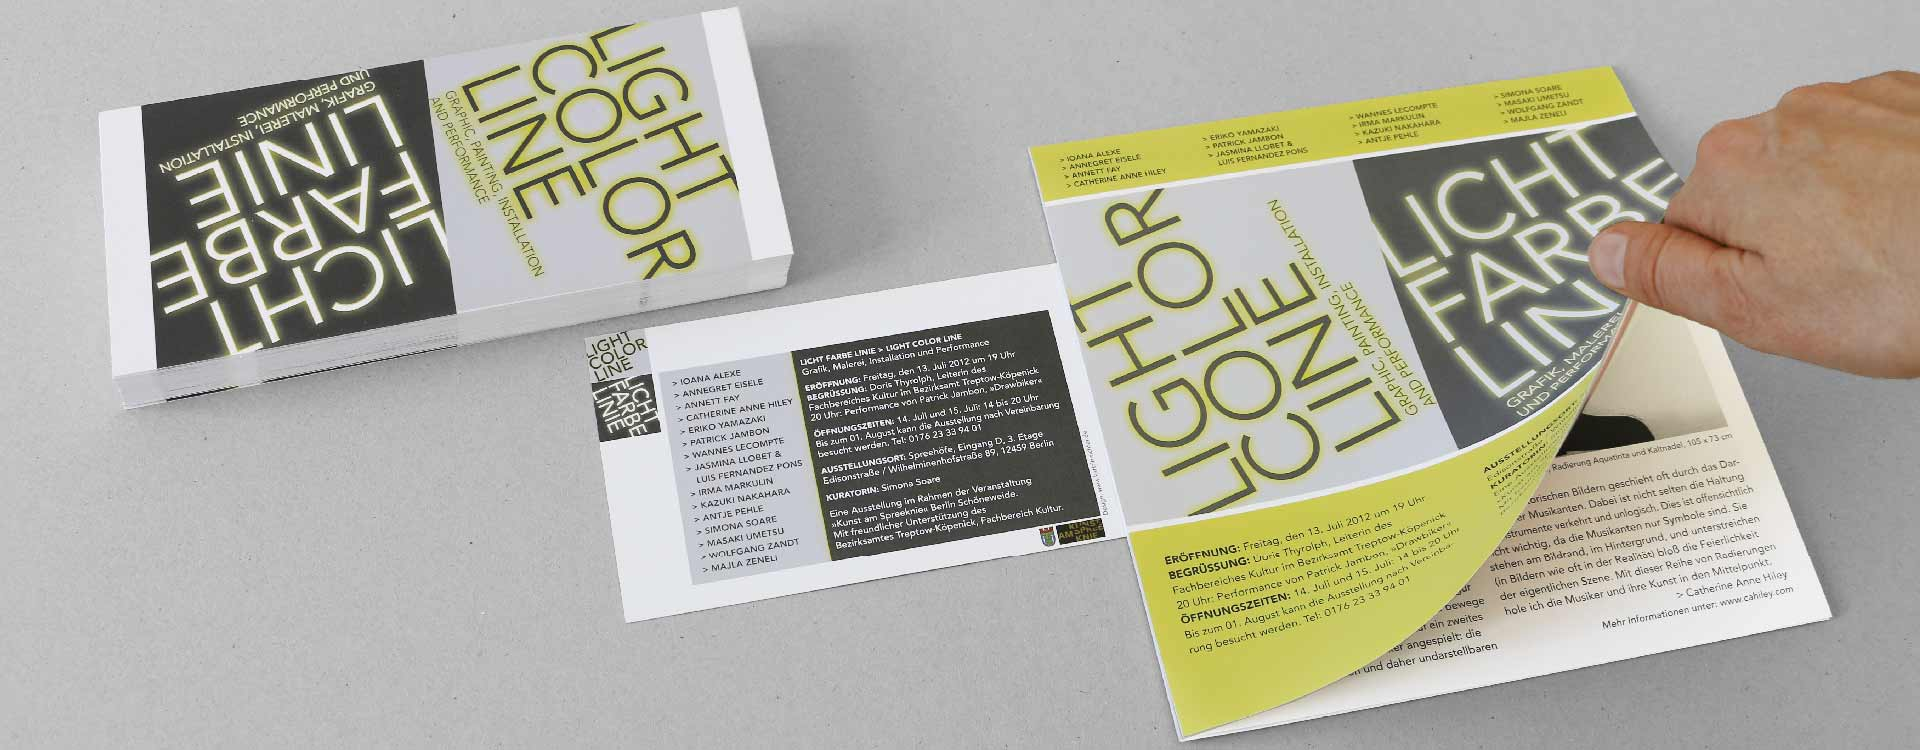 Leaflet and invitation card for the exhibition Light Colour Line in the Spreehöfen in Berlin Schöneweide; Design: Kattrin Richter | Graphic Design Studio